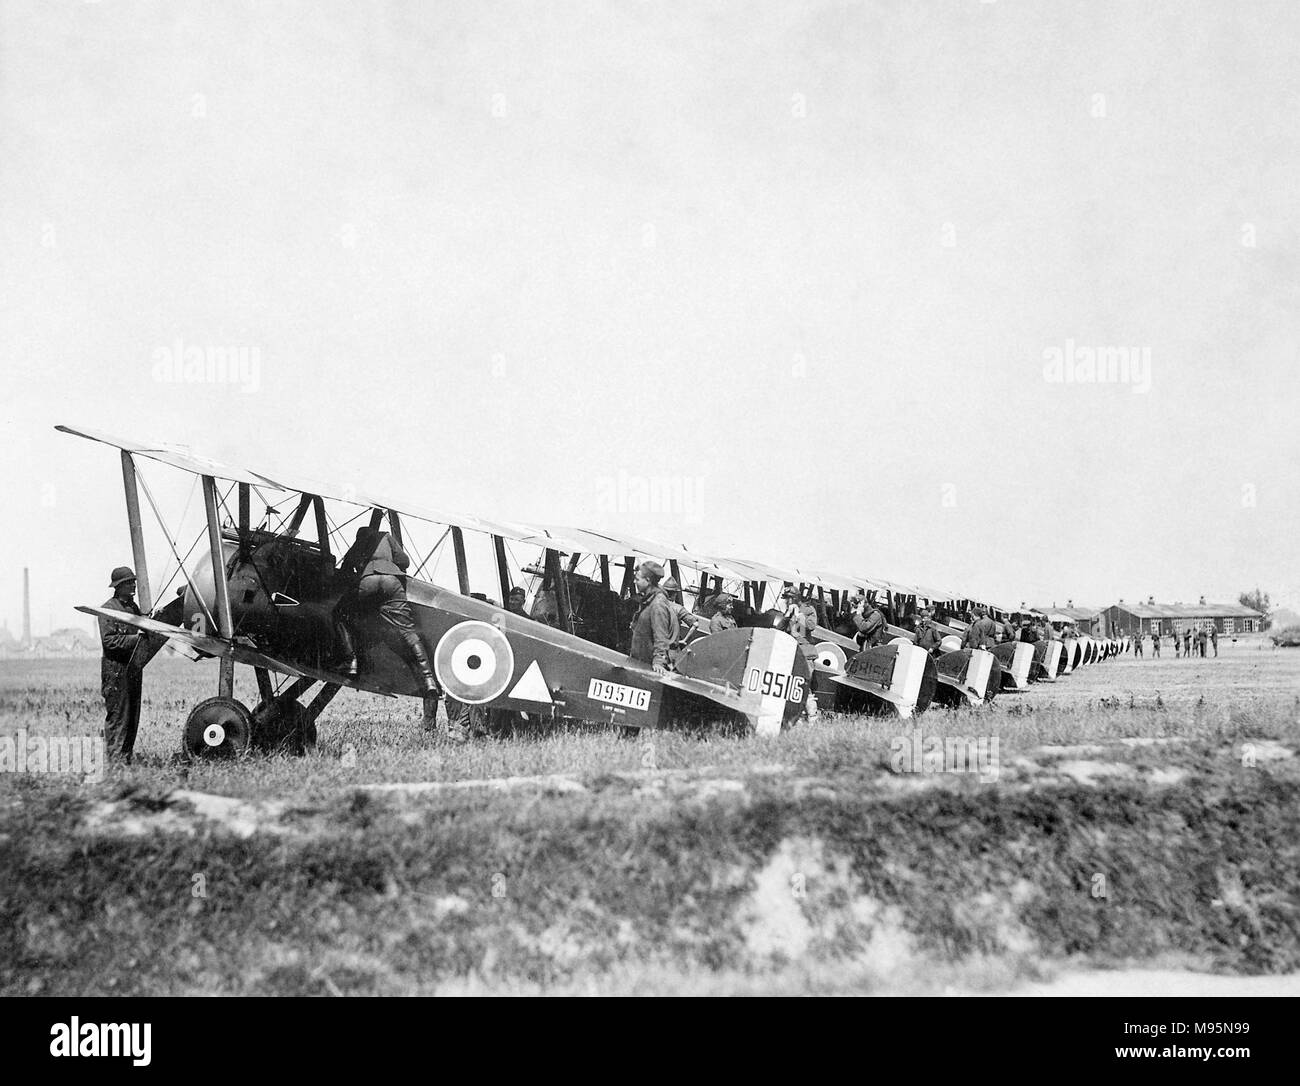 Sopwith Camel. Sopwith Camel F.1 aircraft of the 148th American Aero Squadron in France, August 1918. - Stock Image